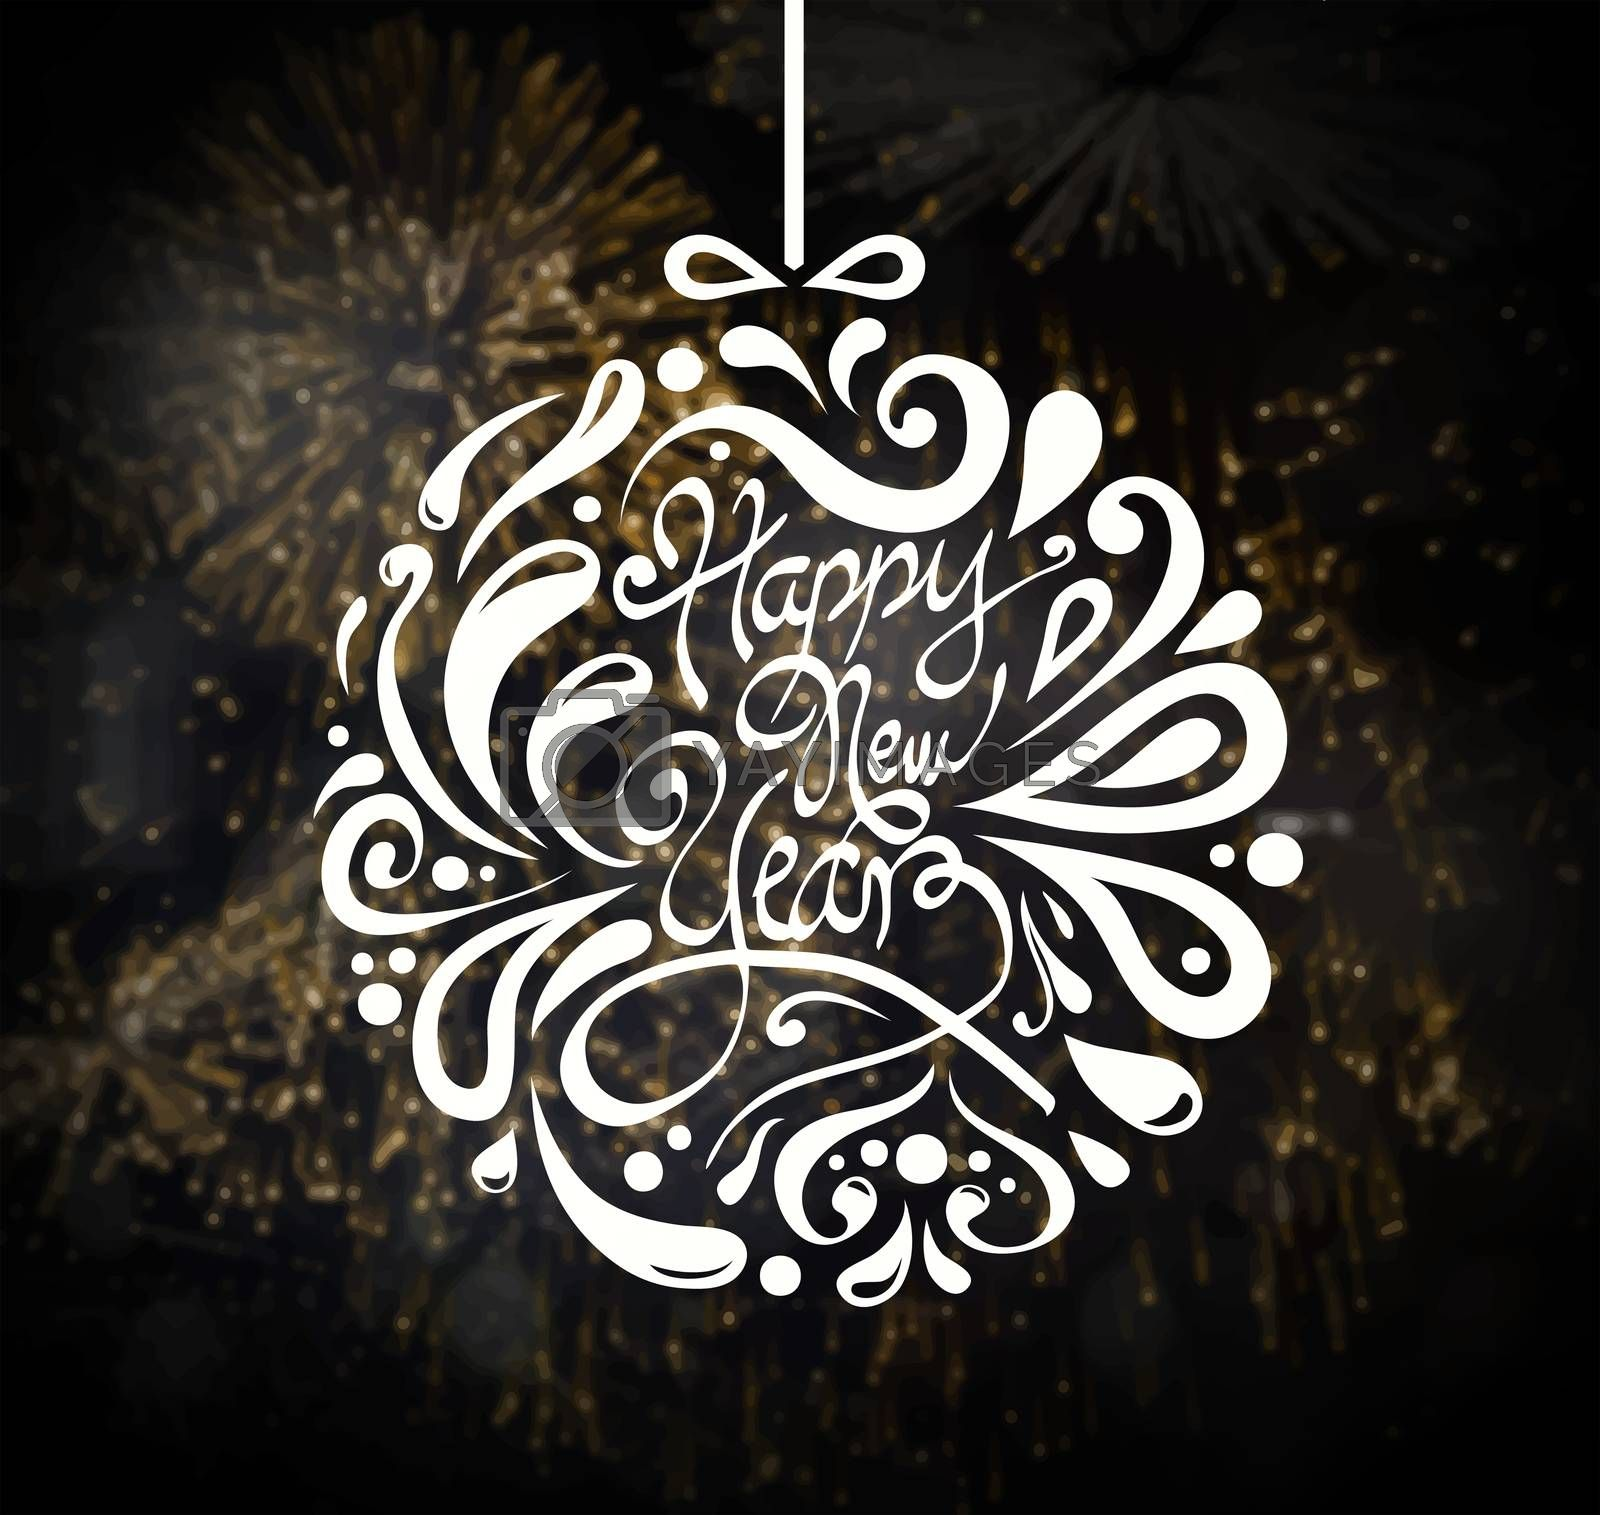 Digitally generated Happy new year vector with fireworks